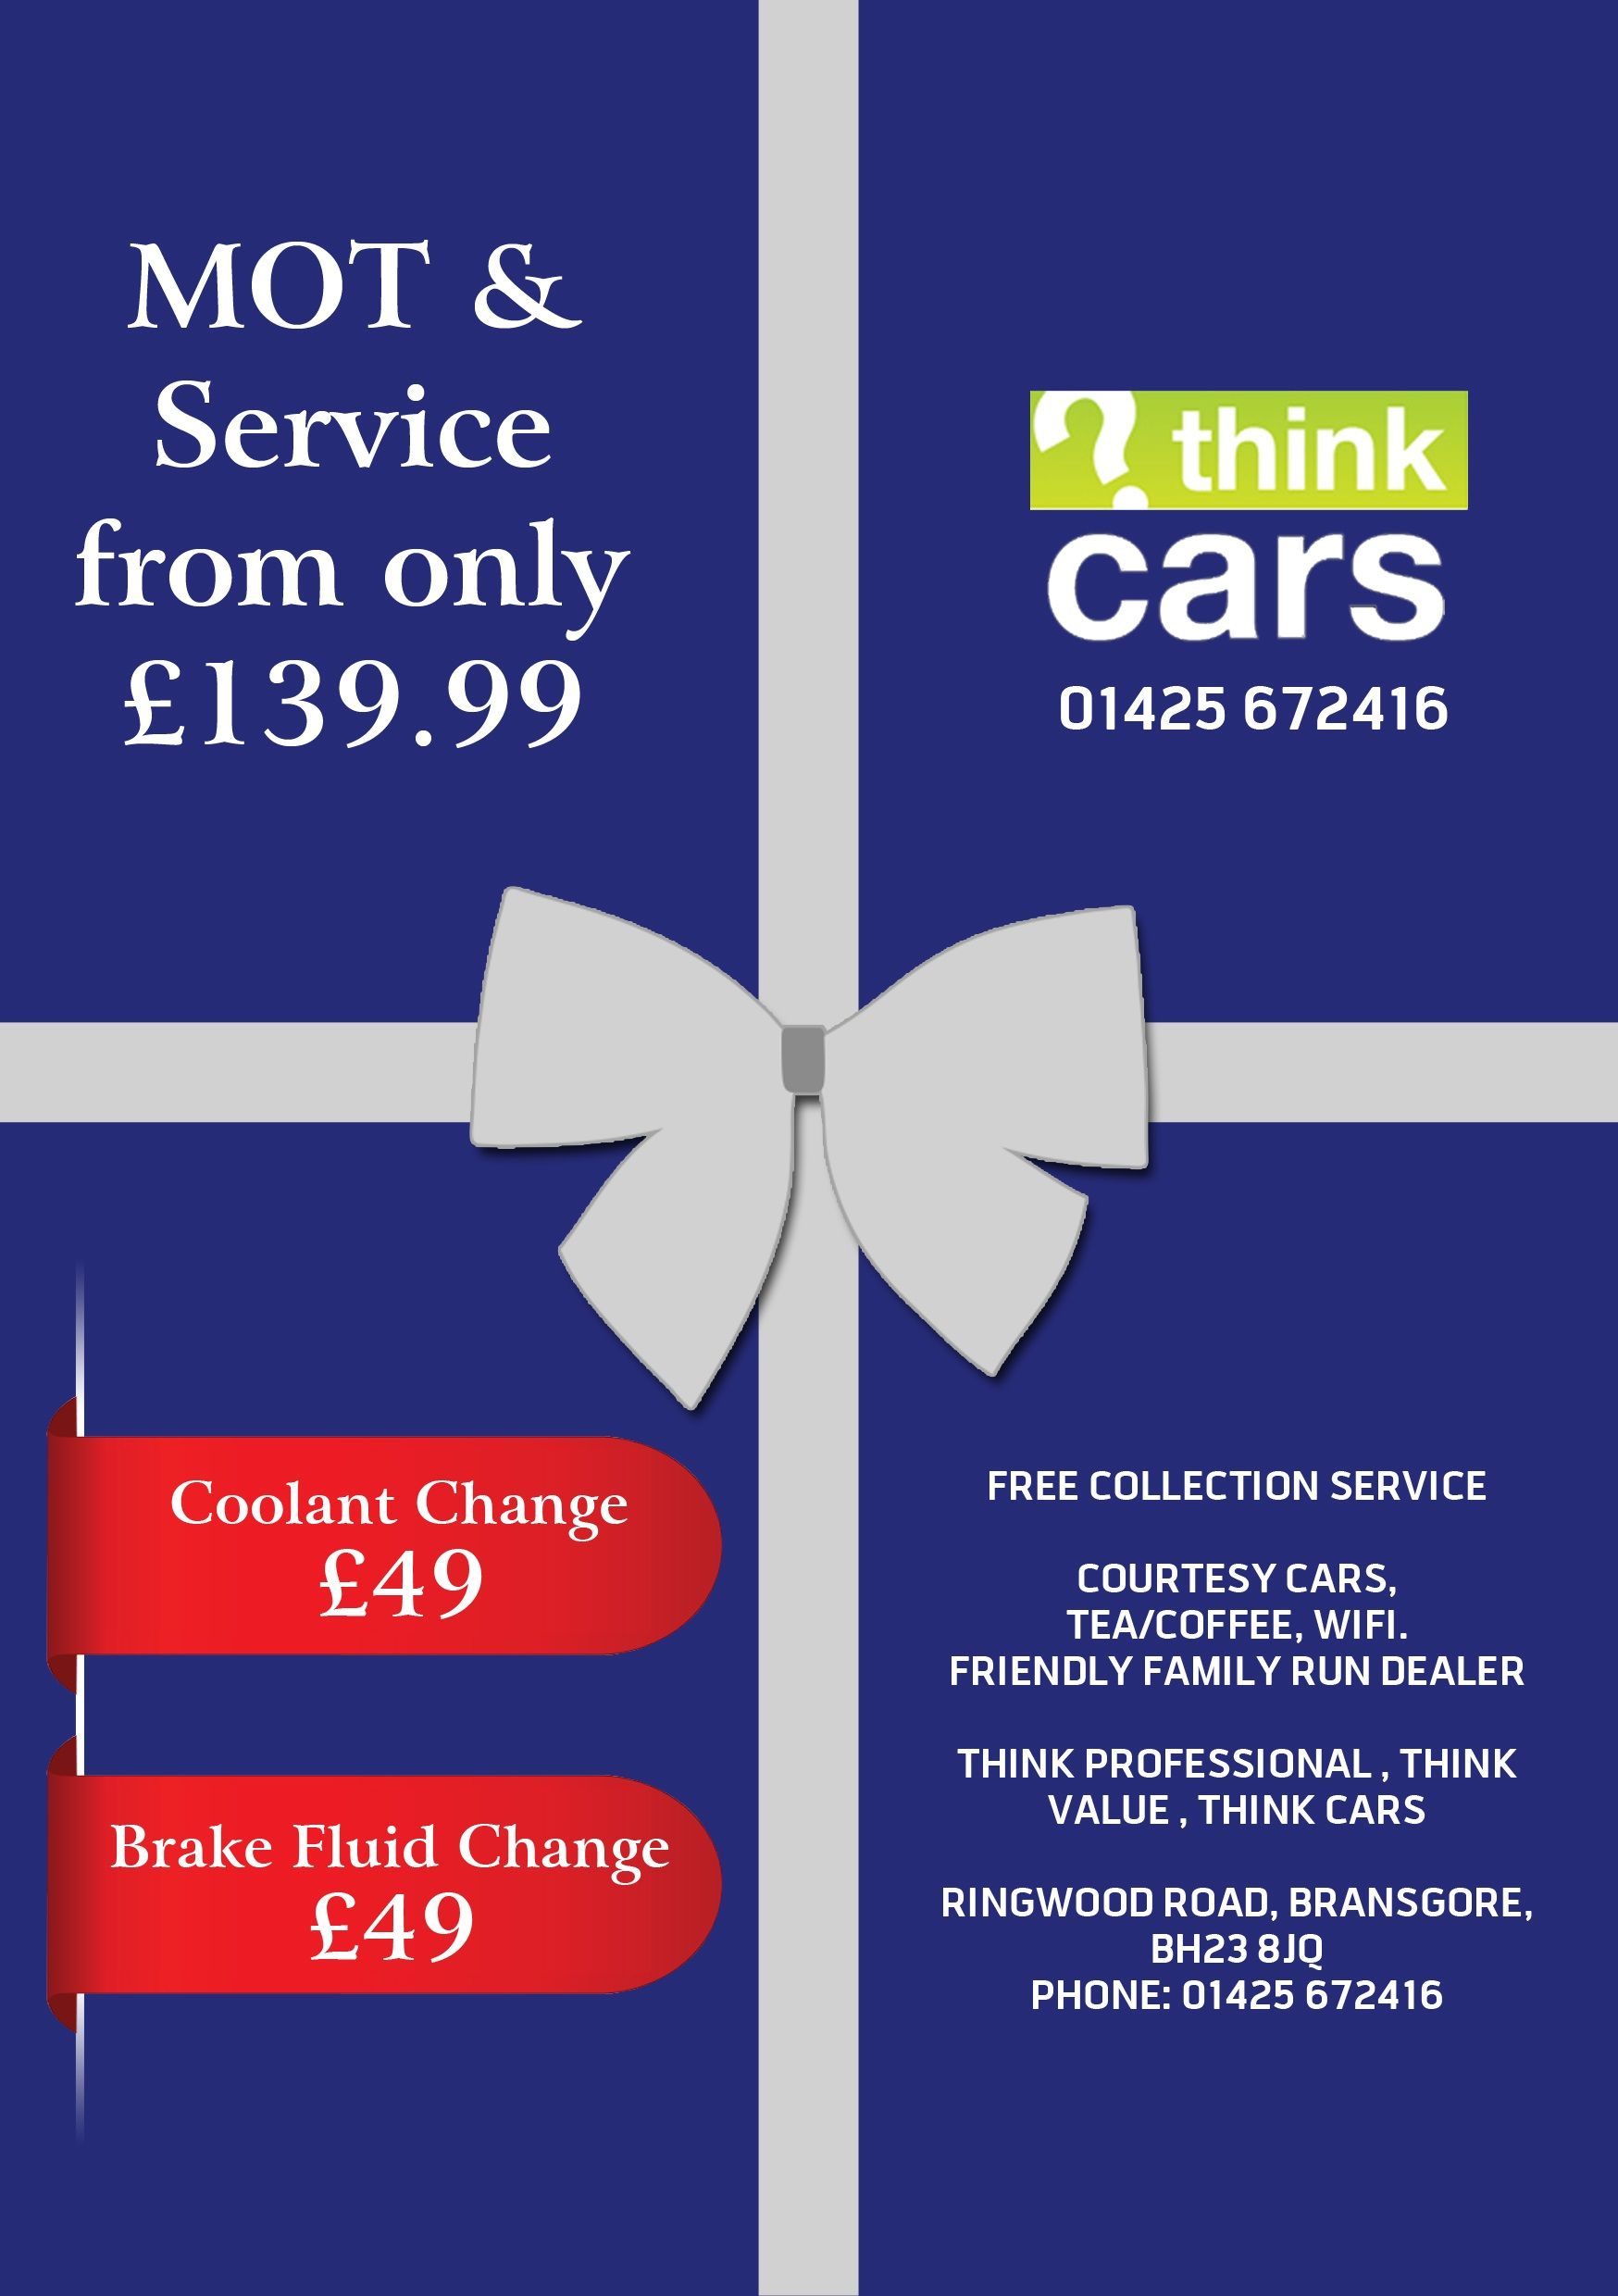 MOT & Service from only £139.99